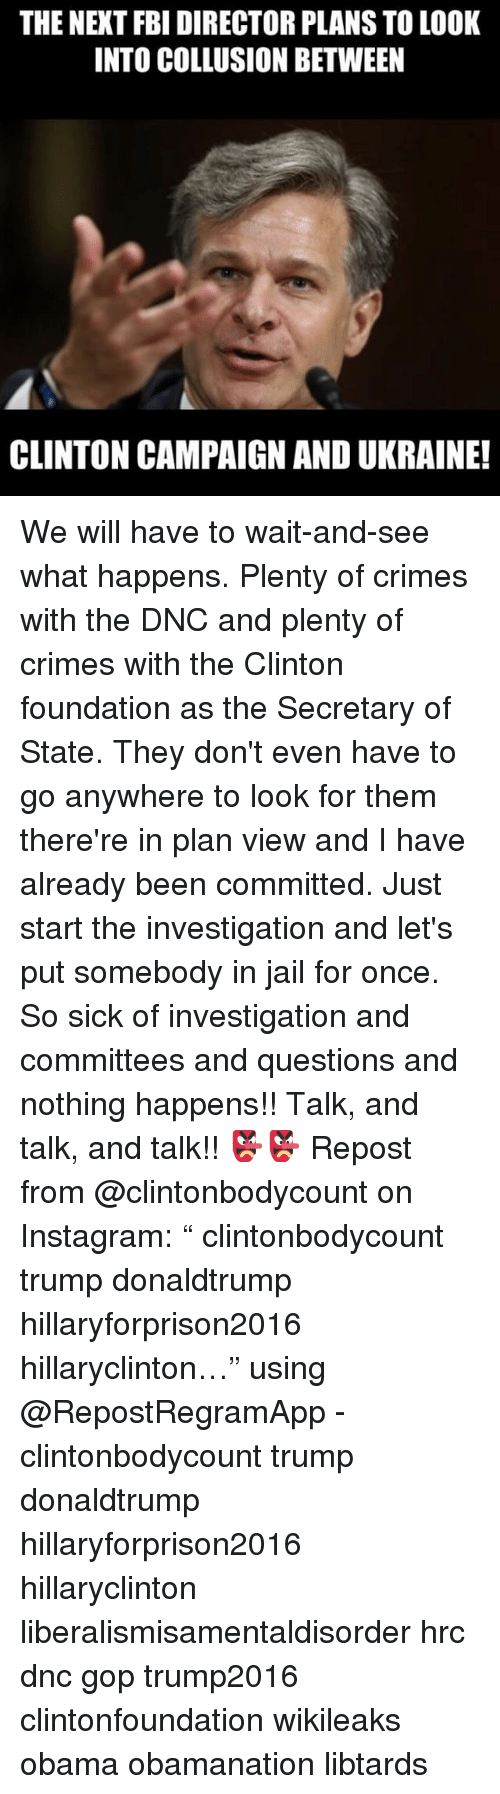 "Hillaryforprison2016: THE NEXT FBI DIRECTOR PLANS TO LOOK  INTO COLLUSION BETWEEN  CLINTON CAMPAIGN AND UKRAINE! We will have to wait-and-see what happens. Plenty of crimes with the DNC and plenty of crimes with the Clinton foundation as the Secretary of State. They don't even have to go anywhere to look for them there're in plan view and I have already been committed. Just start the investigation and let's put somebody in jail for once. So sick of investigation and committees and questions and nothing happens!! Talk, and talk, and talk!! 👺👺 Repost from @clintonbodycount on Instagram: "" clintonbodycount trump donaldtrump hillaryforprison2016 hillaryclinton…"" using @RepostRegramApp - clintonbodycount trump donaldtrump hillaryforprison2016 hillaryclinton liberalismisamentaldisorder hrc dnc gop trump2016 clintonfoundation wikileaks obama obamanation libtards"